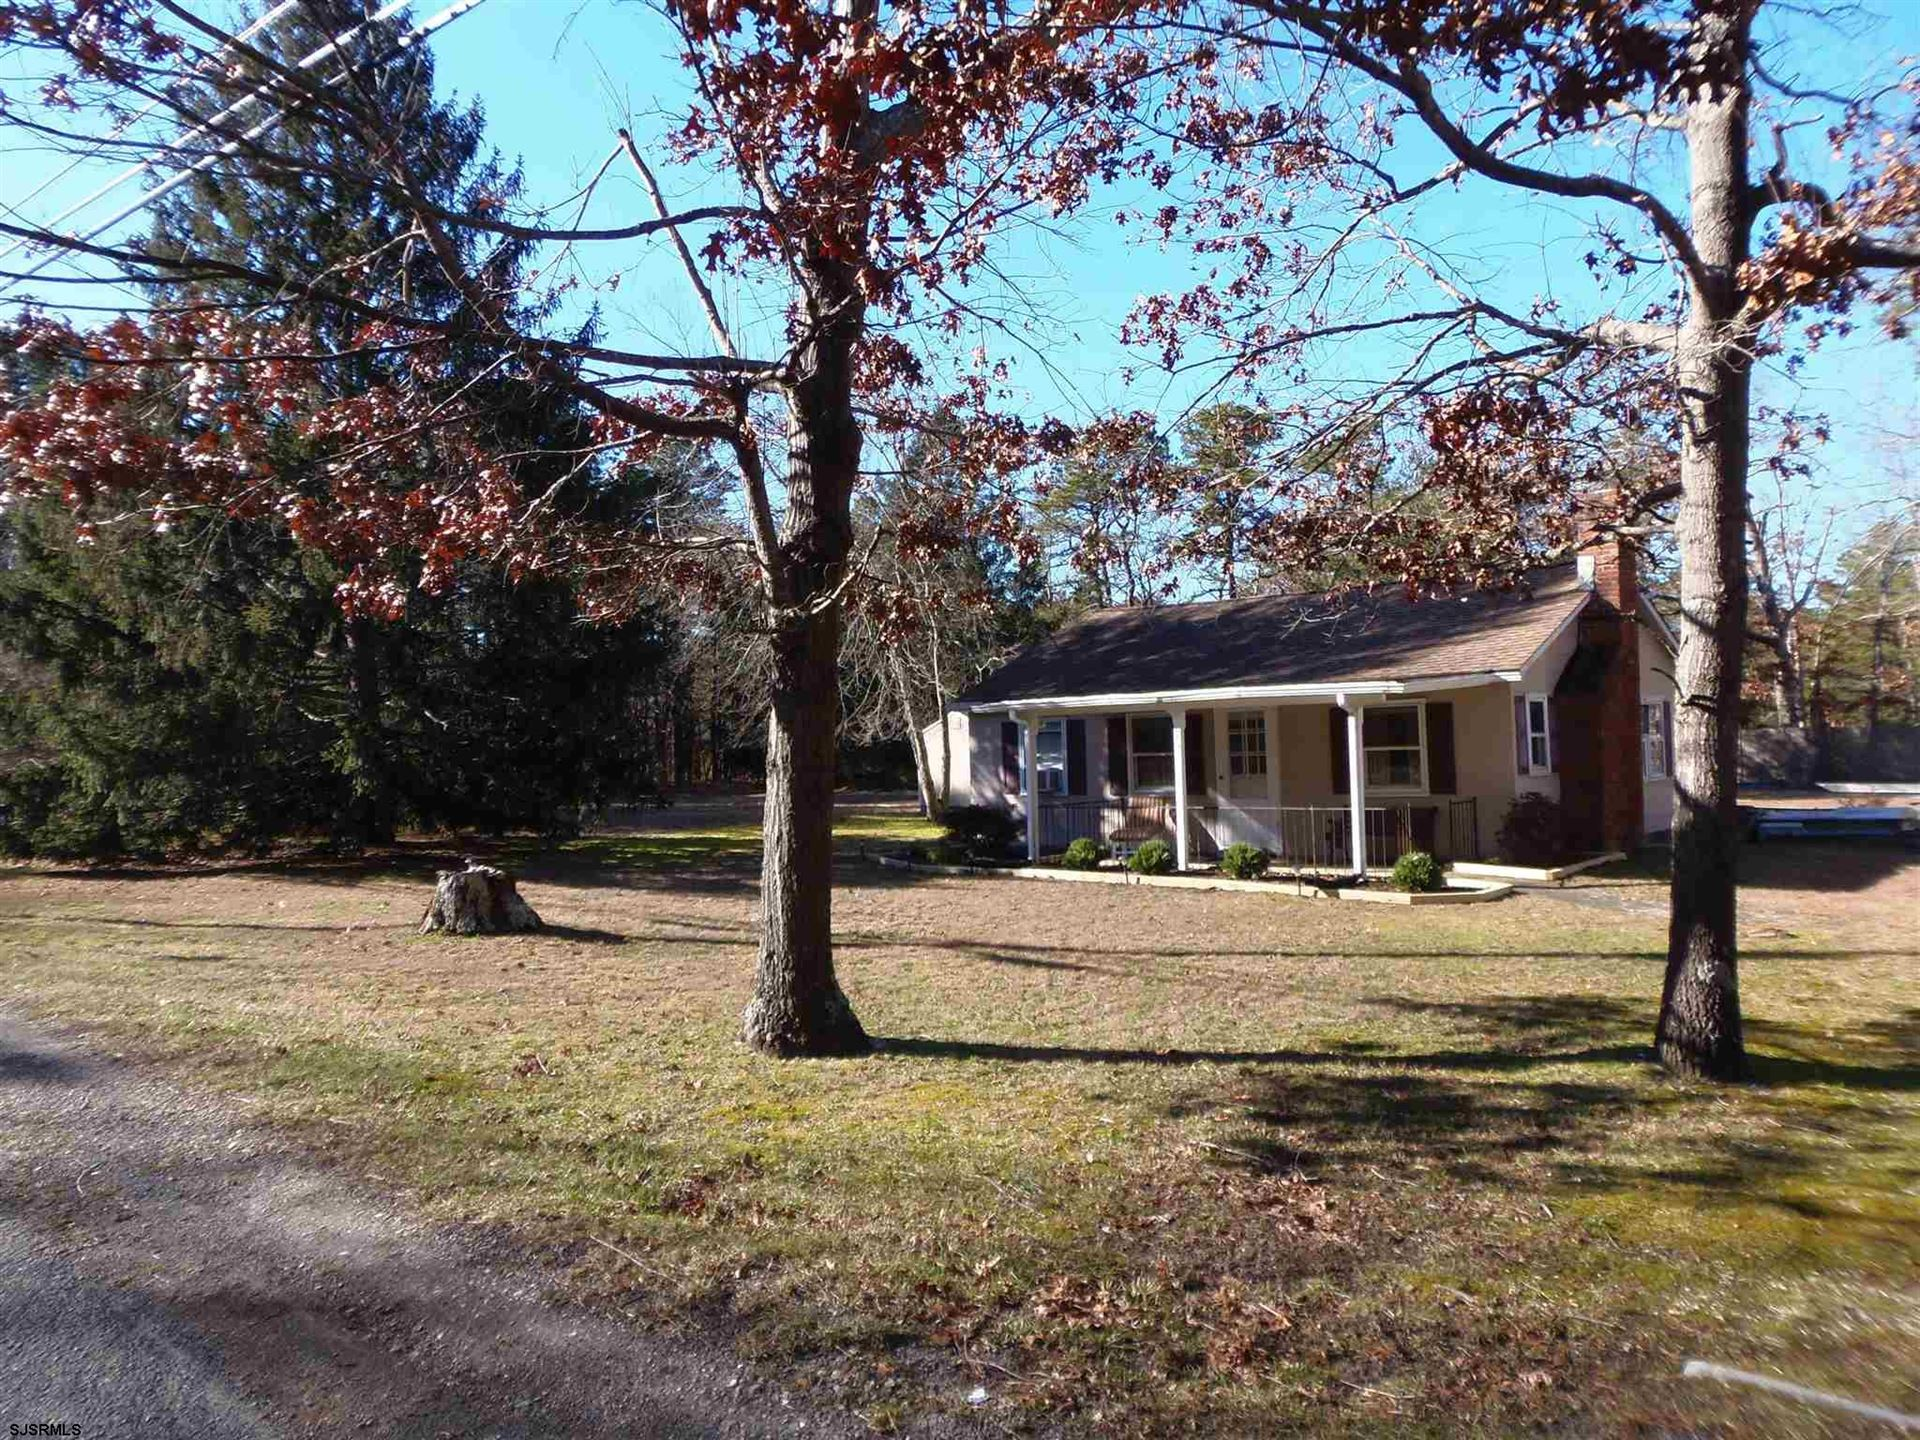 615 2nd Ave, Galloway, NJ 08205 - #: 554897